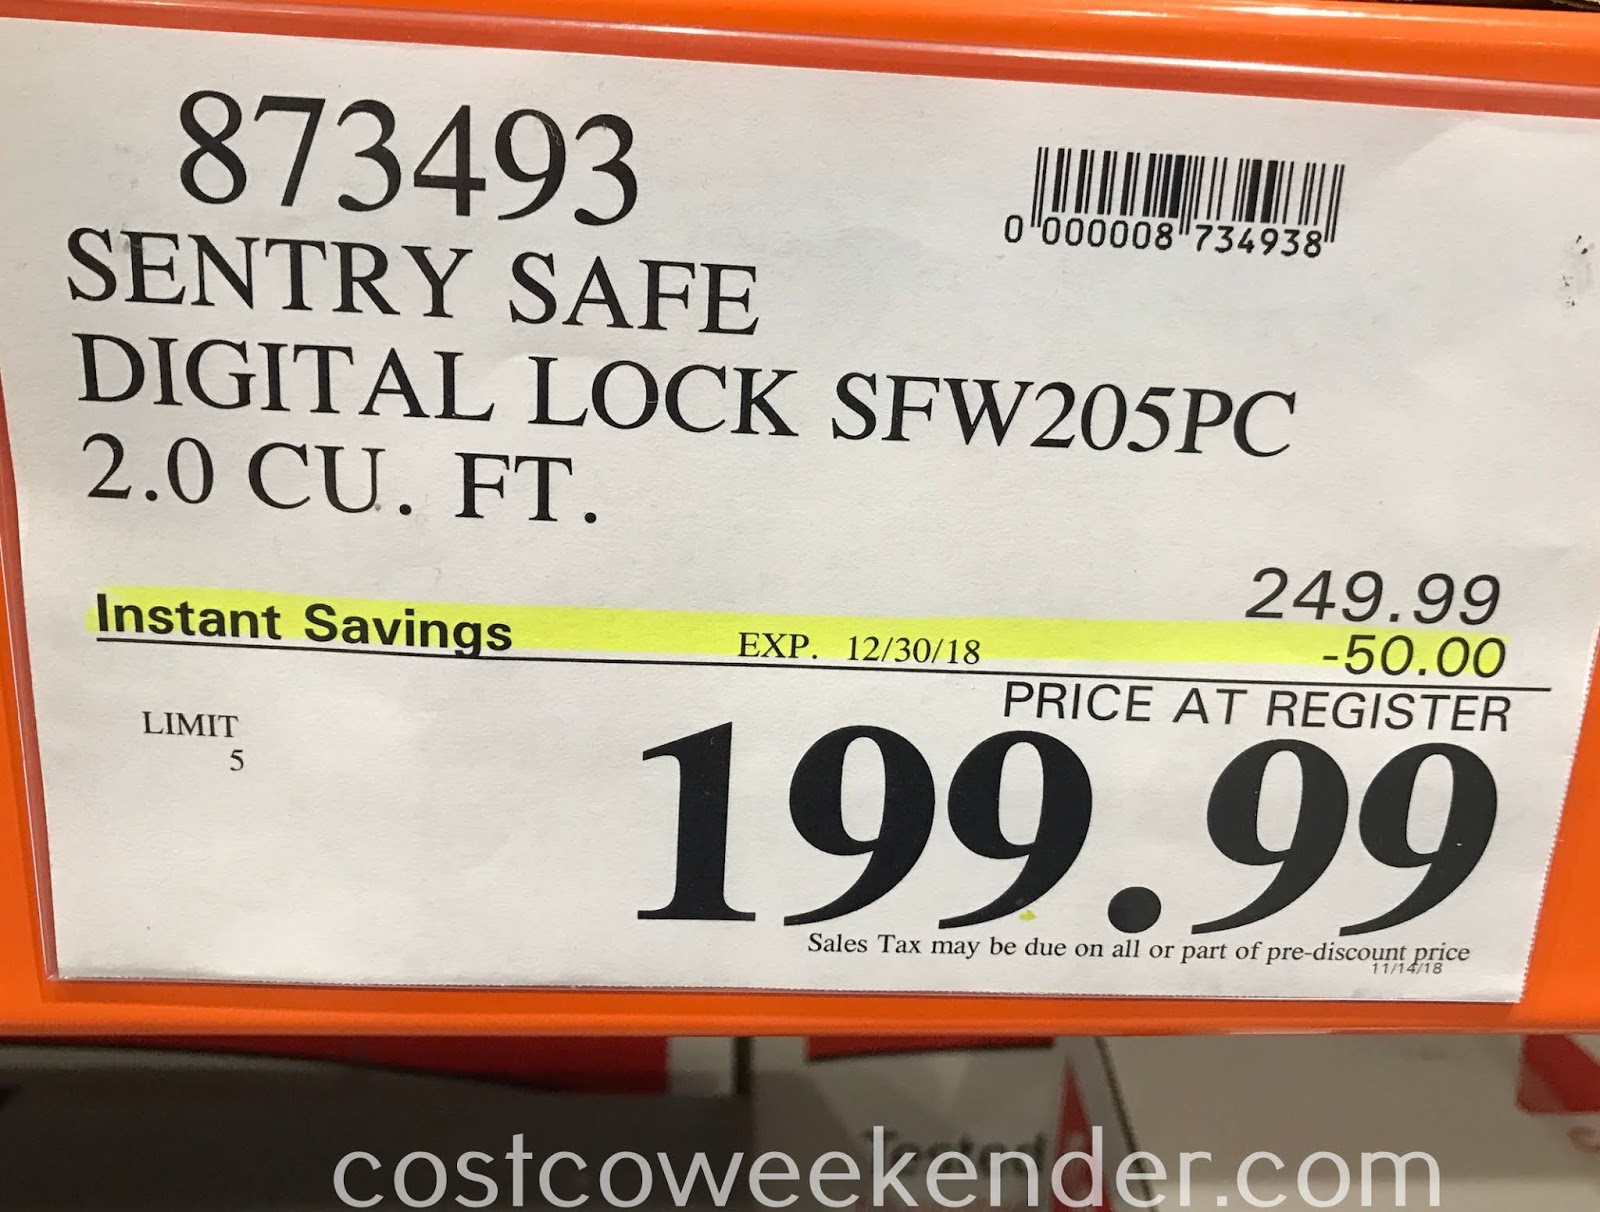 Deal for the SentrySafe SFW205GPC Digital Safe at Costco